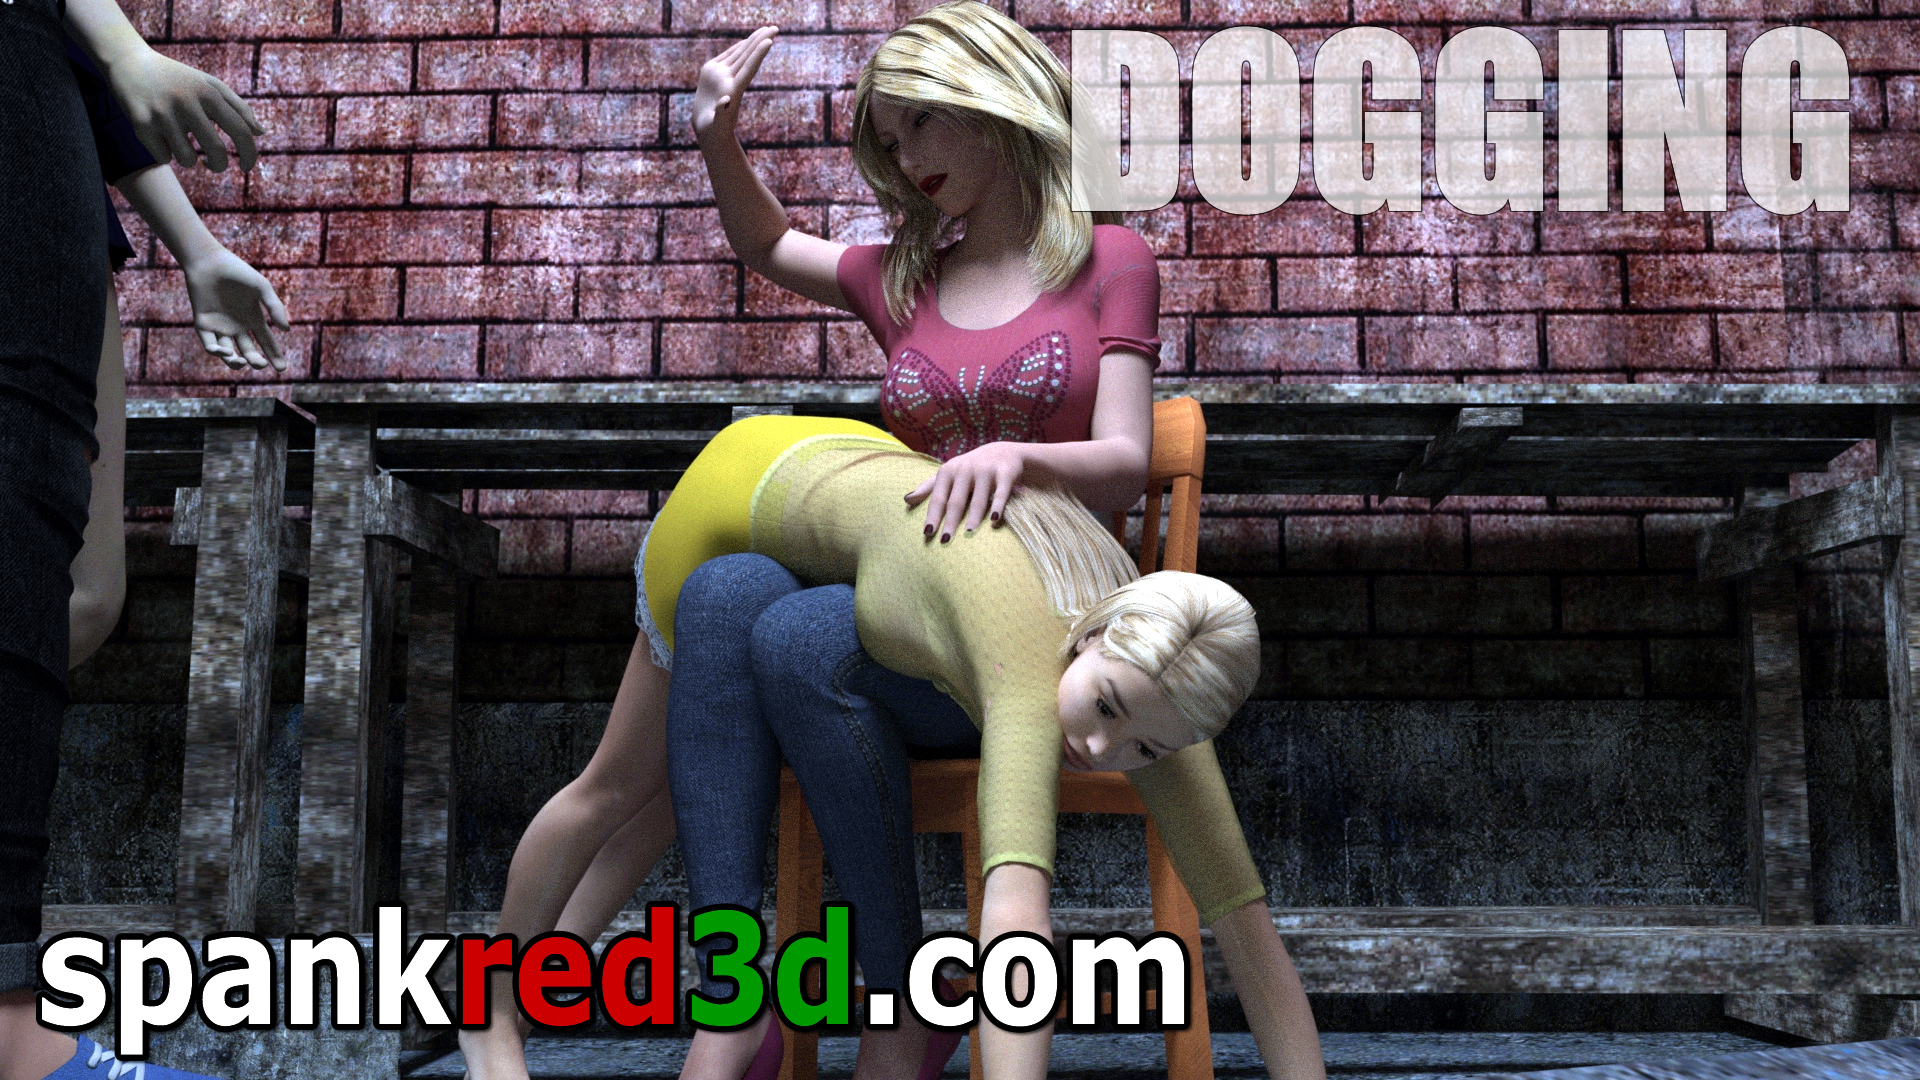 Dogging spanking naughty girls bottoms